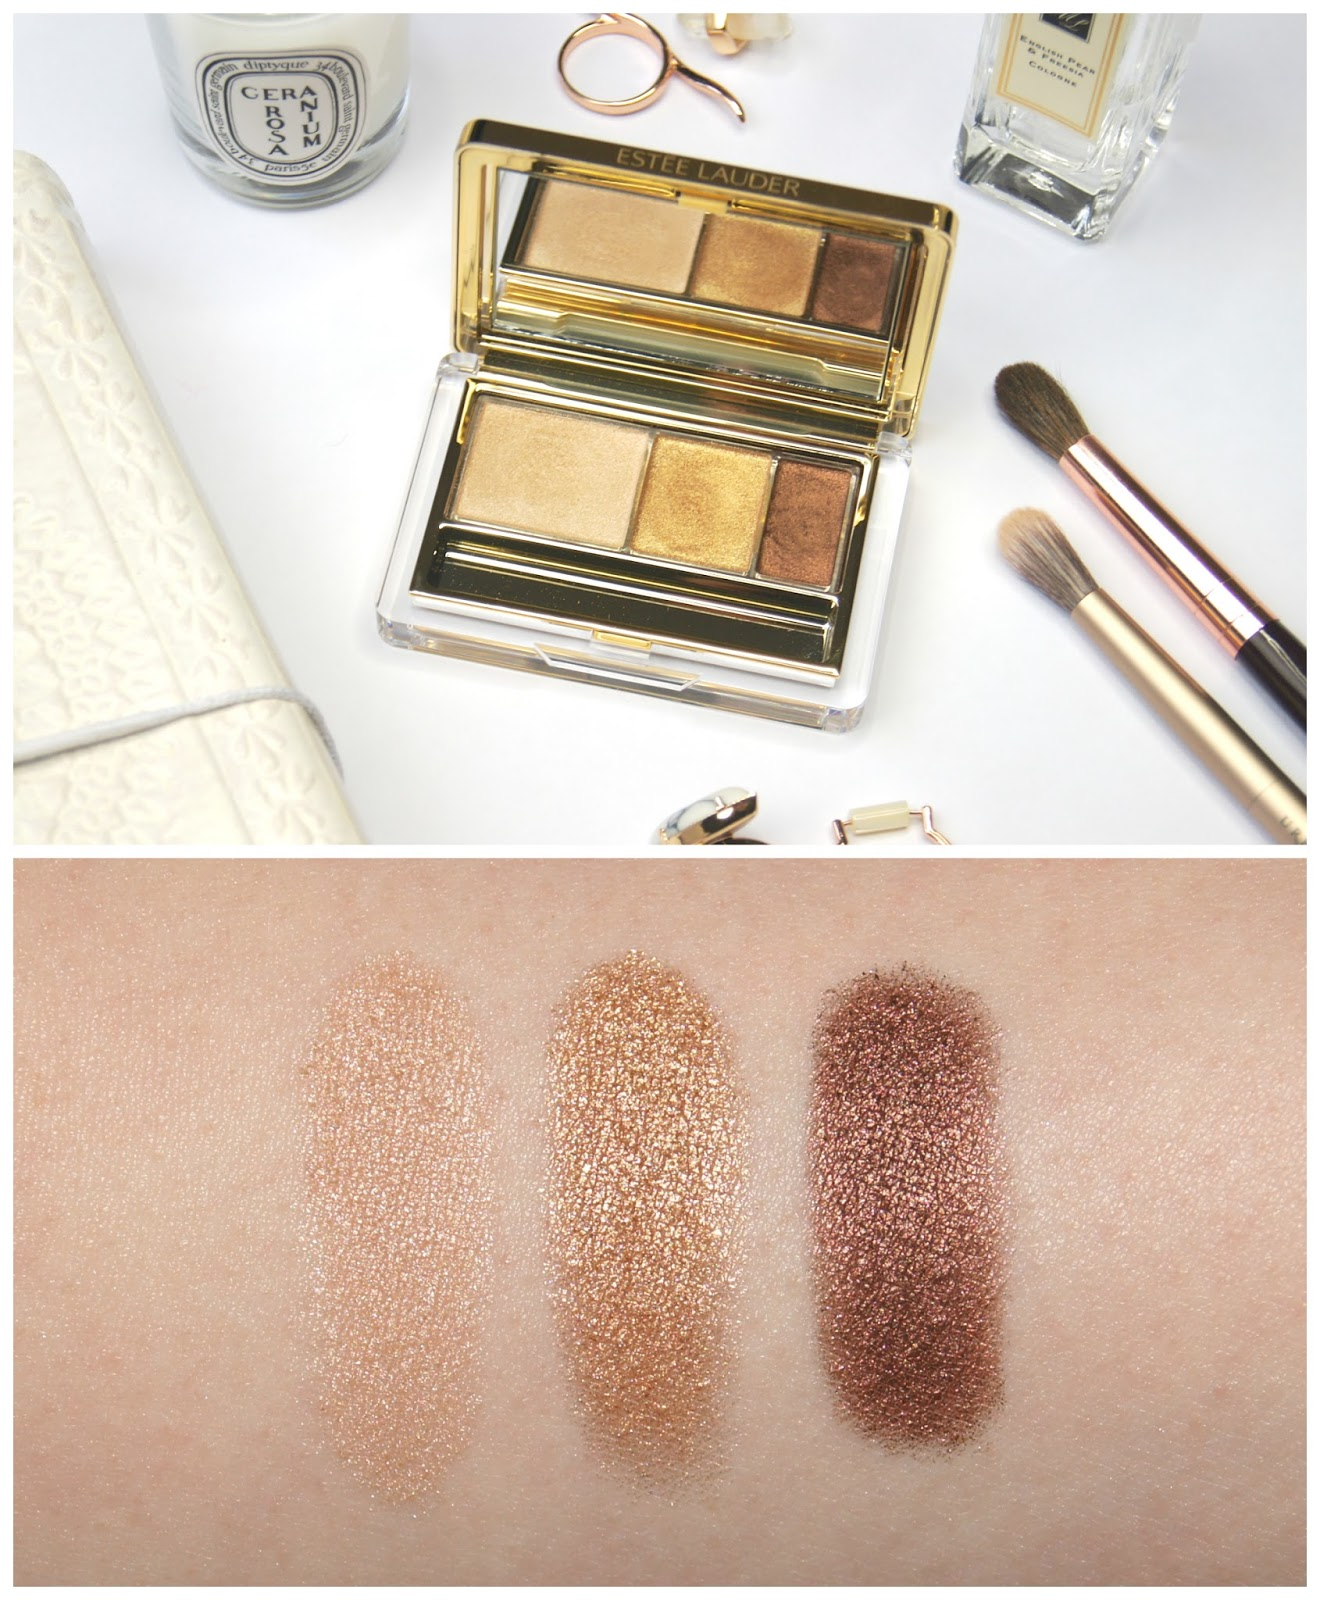 estee lauder pure color intense eyeshadow trio 05 gilded chocolates review swatches